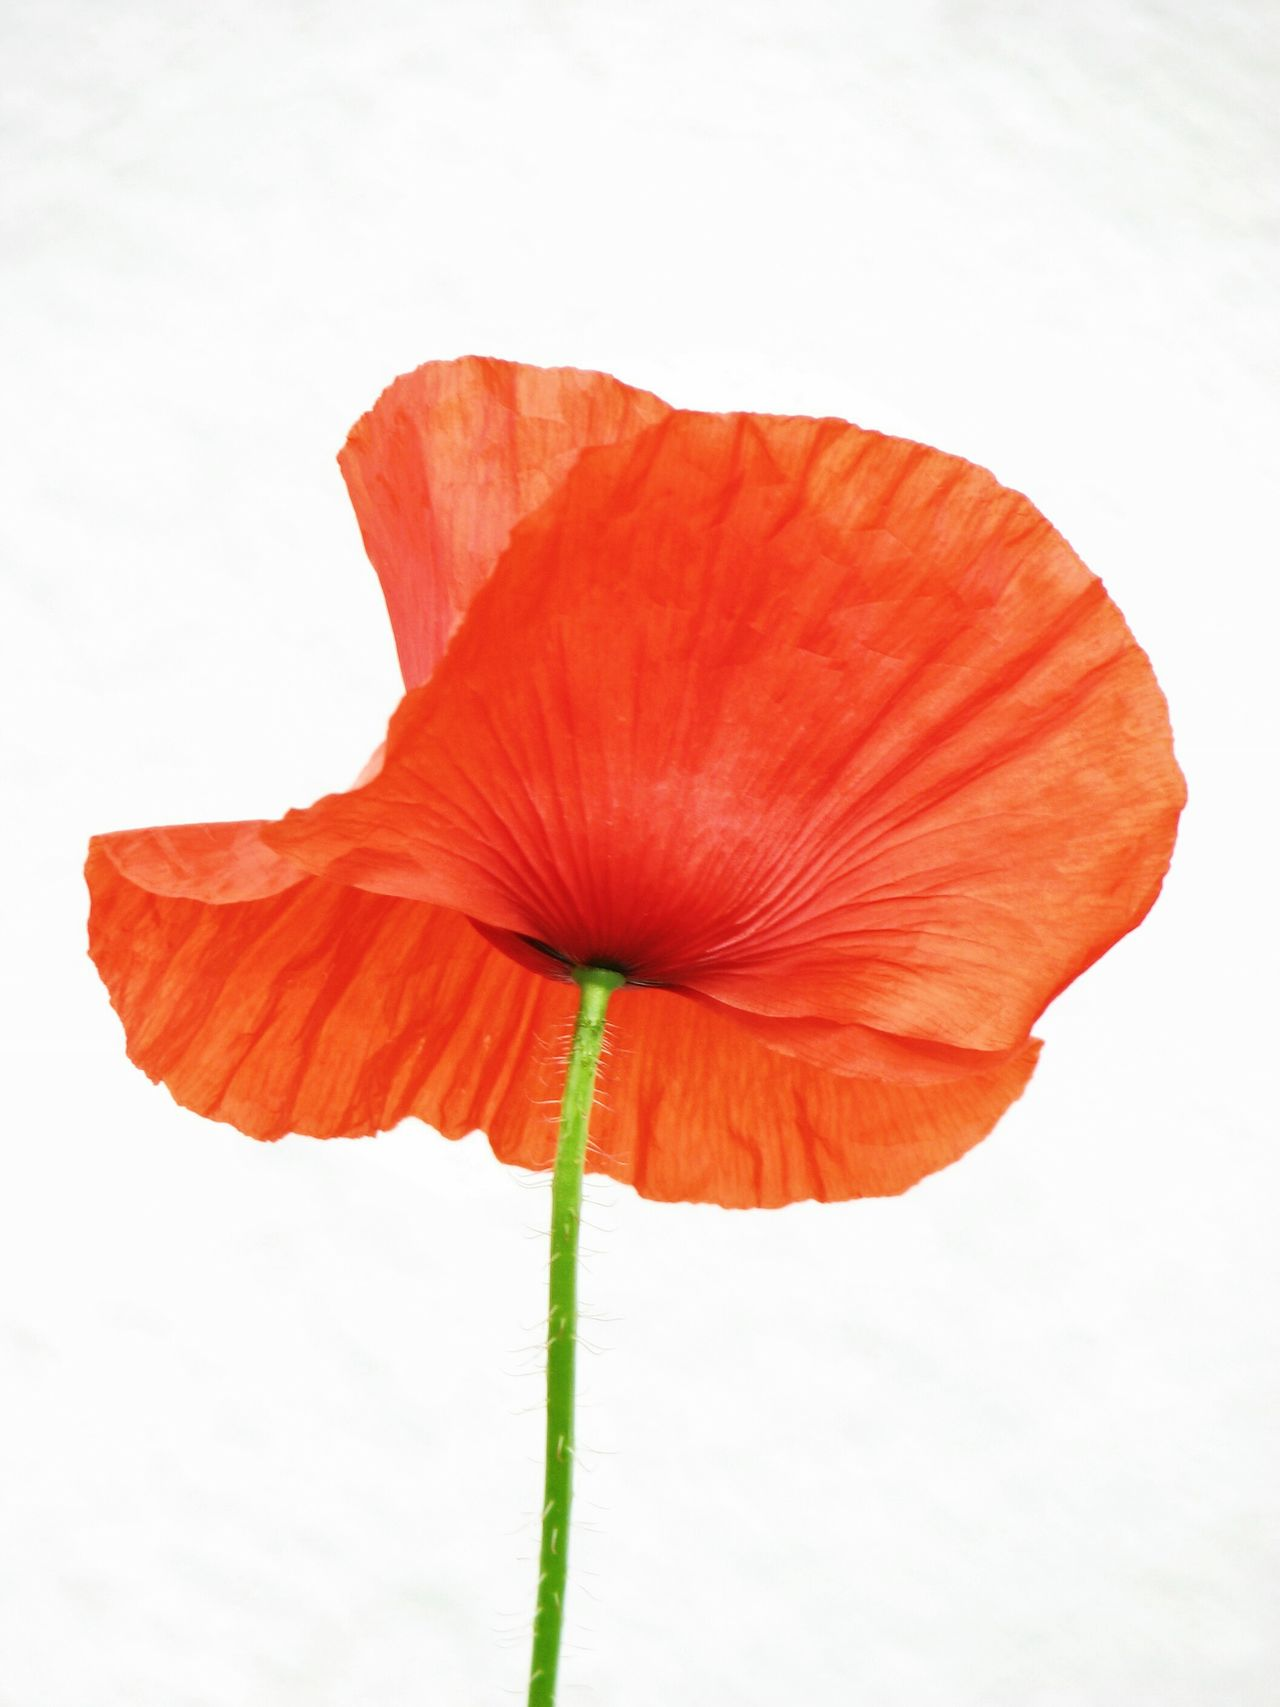 Poppyhaven 2. Poppy Poppy Flowers Poppies  Flower Collection Viewpoint Unusual View Nature On Your Doorstep Nature_collection Nature Photography Wild Flowers Poppy Love Red Poppy White Background Single Flower